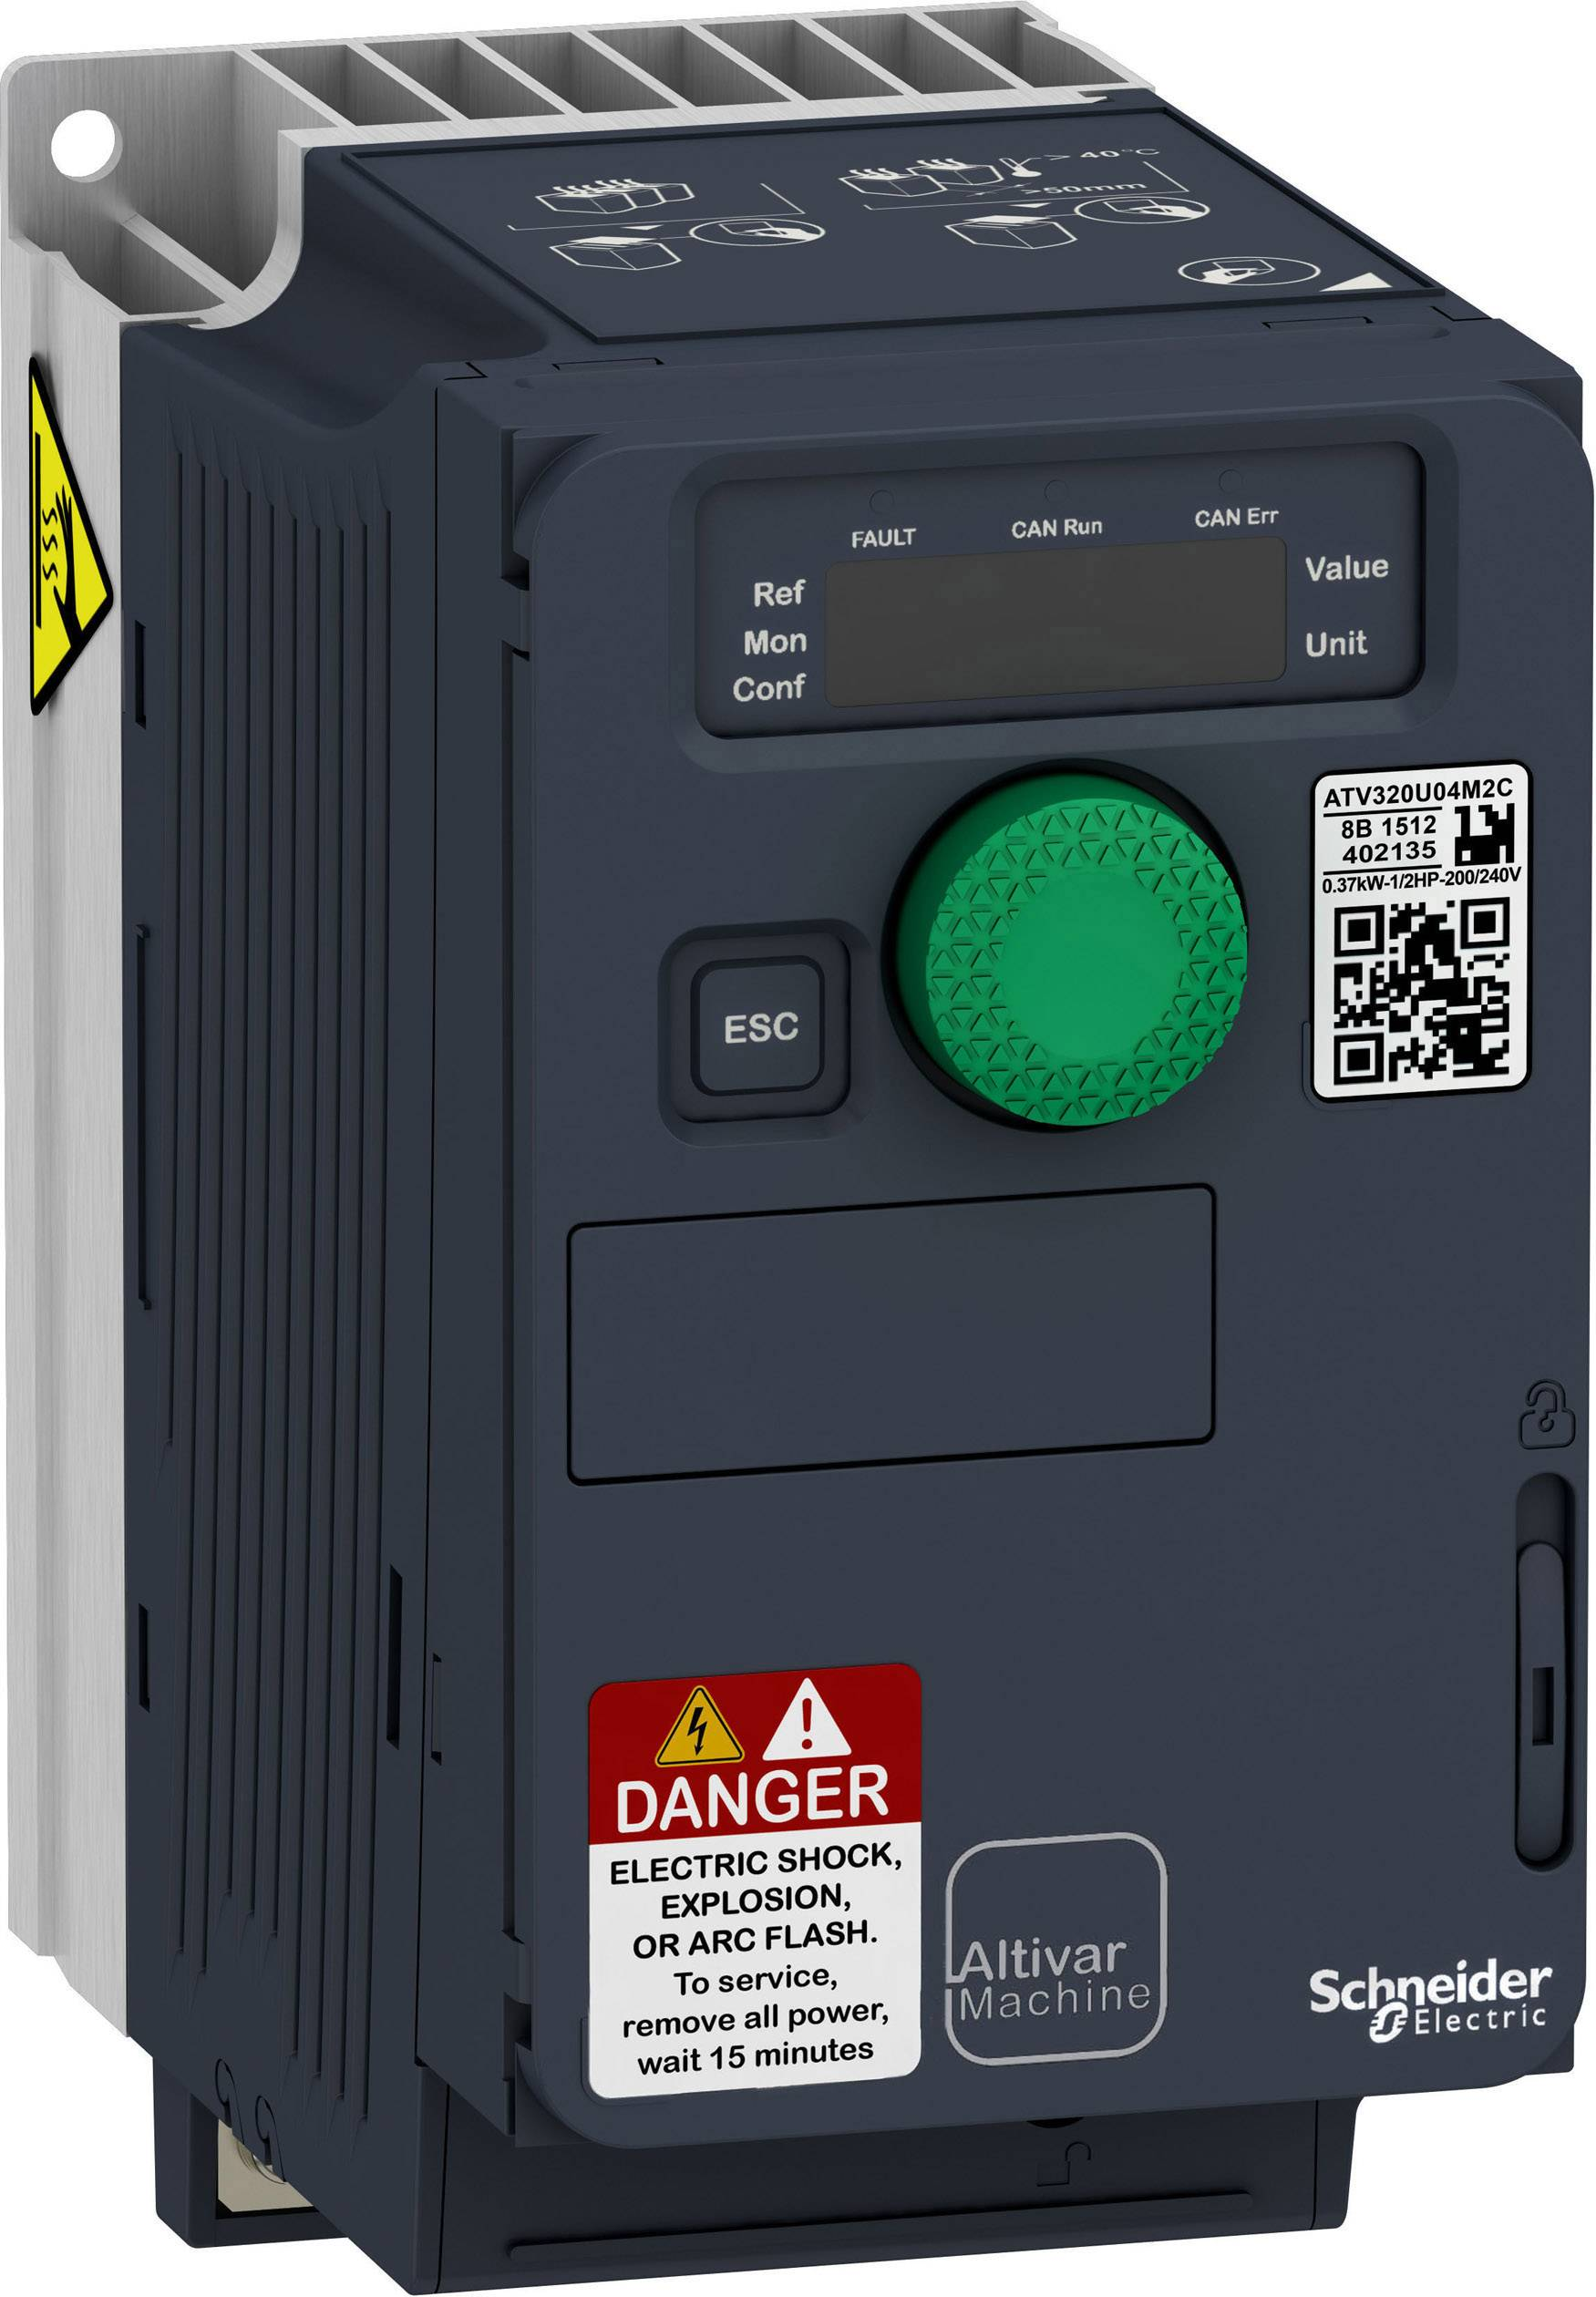 Schneider Electric Frequency inverter ATV320U06M2C 1-phase | Conrad com